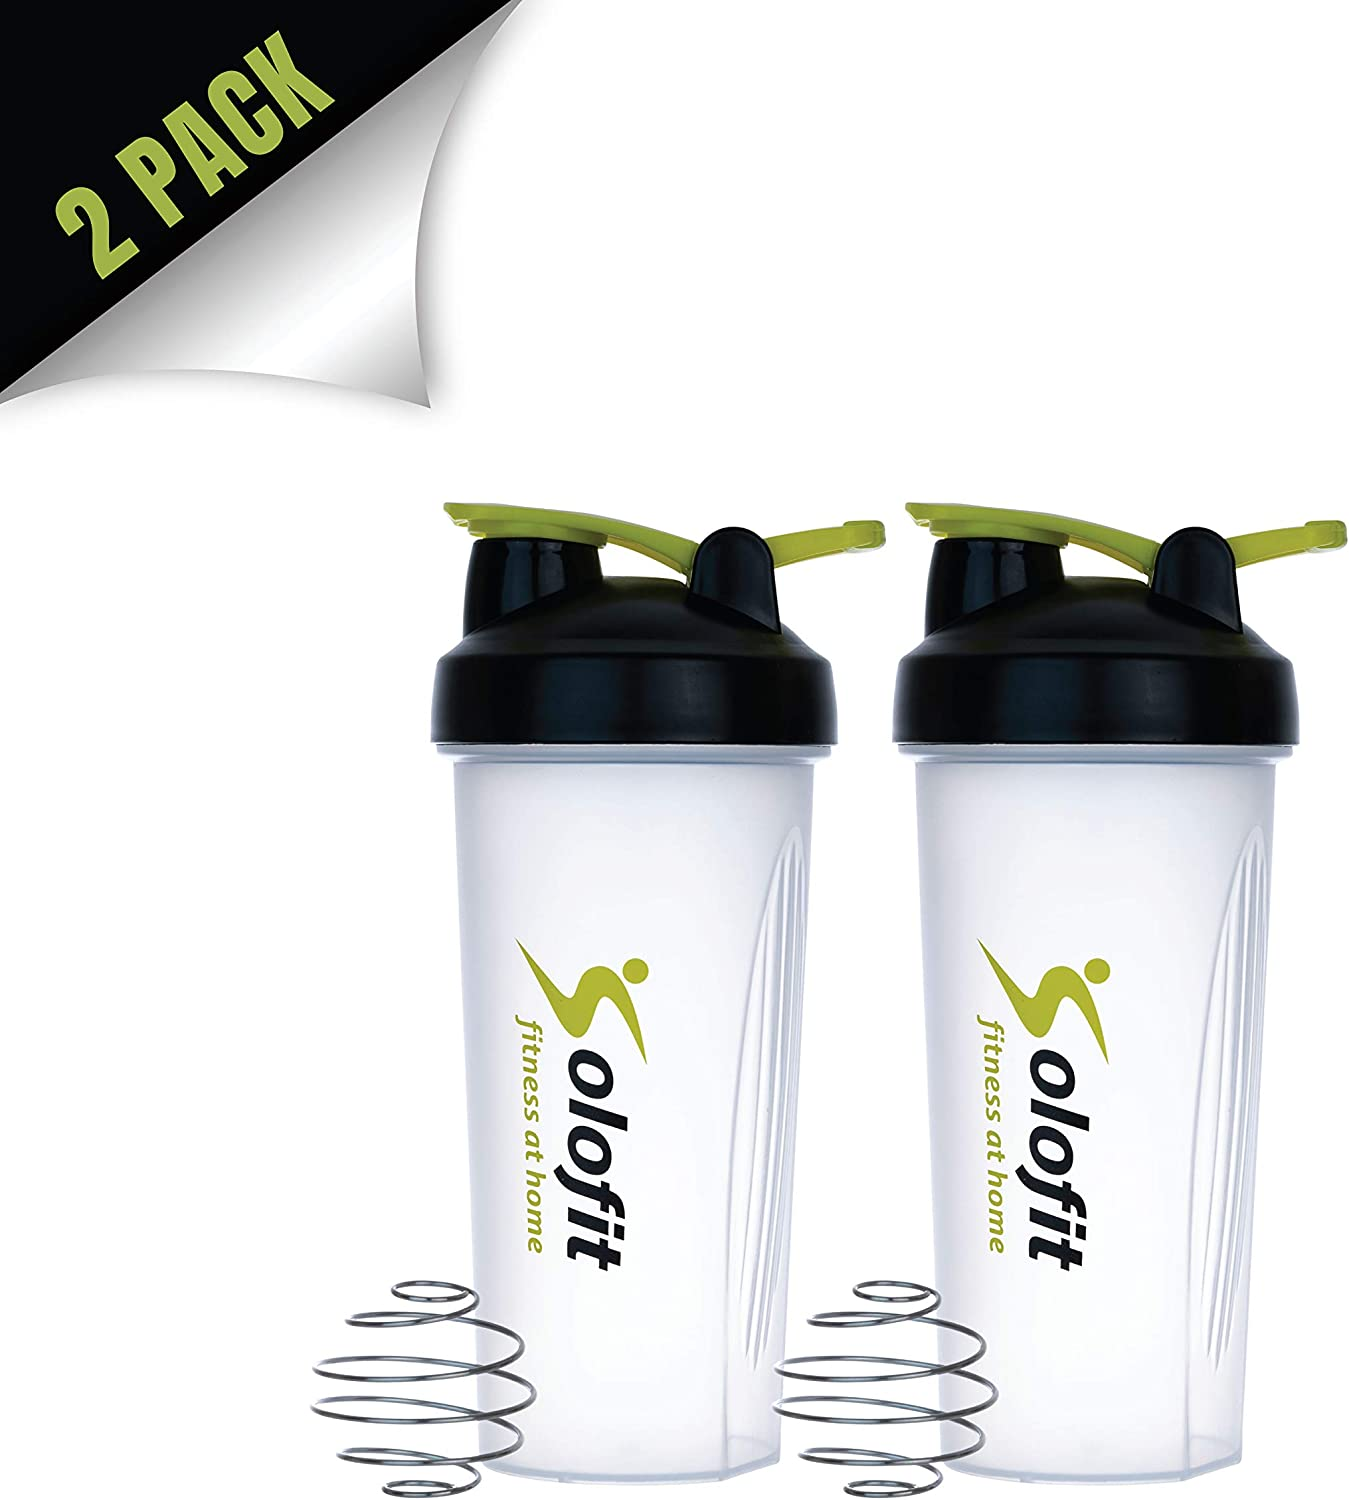 Solofit Protein Shaker Bottles with Shaker Balls– Leak Proof Smoothie & Drink Blender Bottle – Portable Supplement Mixer Cup - Ideal for Fitness Enthusiasts, Athletes- 28 Ounce (Pack of 2)